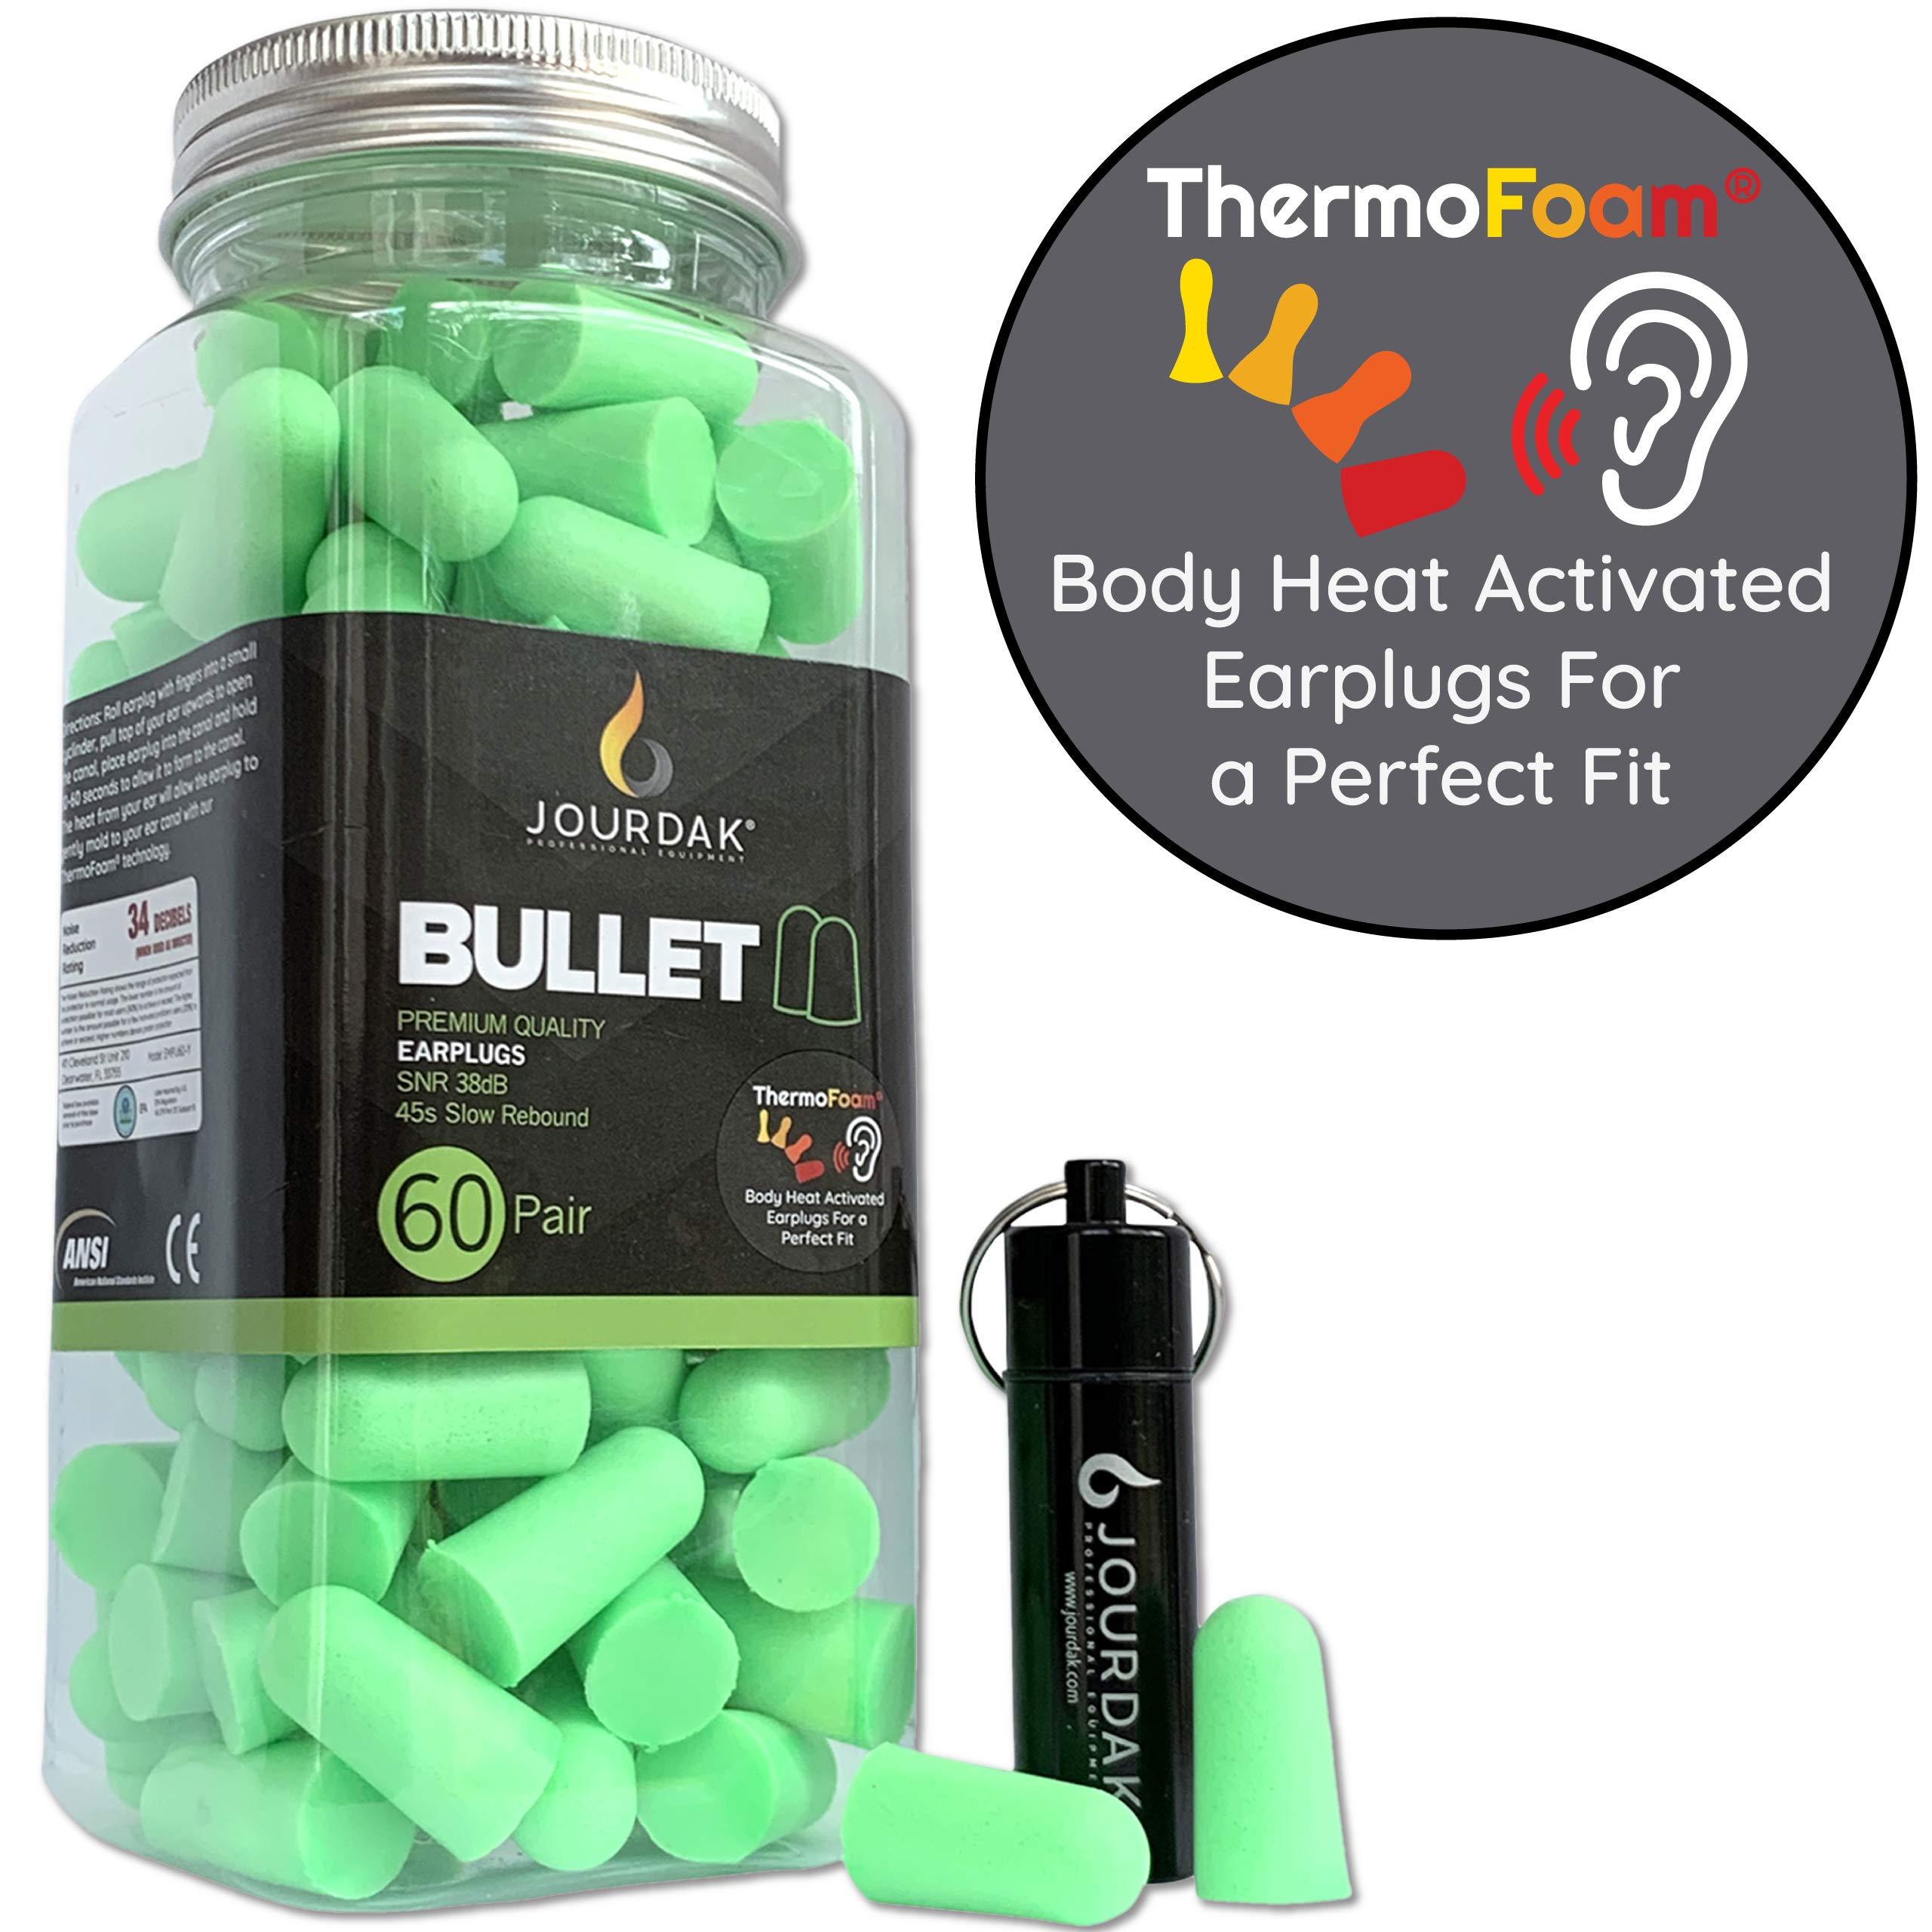 Ear Plugs for Sleeping Block Out Snoring, Premium Thermo Foam Noise Reduction and Cancelling Earplugs for Shooting Range Sleep Loud Events Construction Work Study by Jourdak New NRR/SNR 36db 60Pair by Jourdak